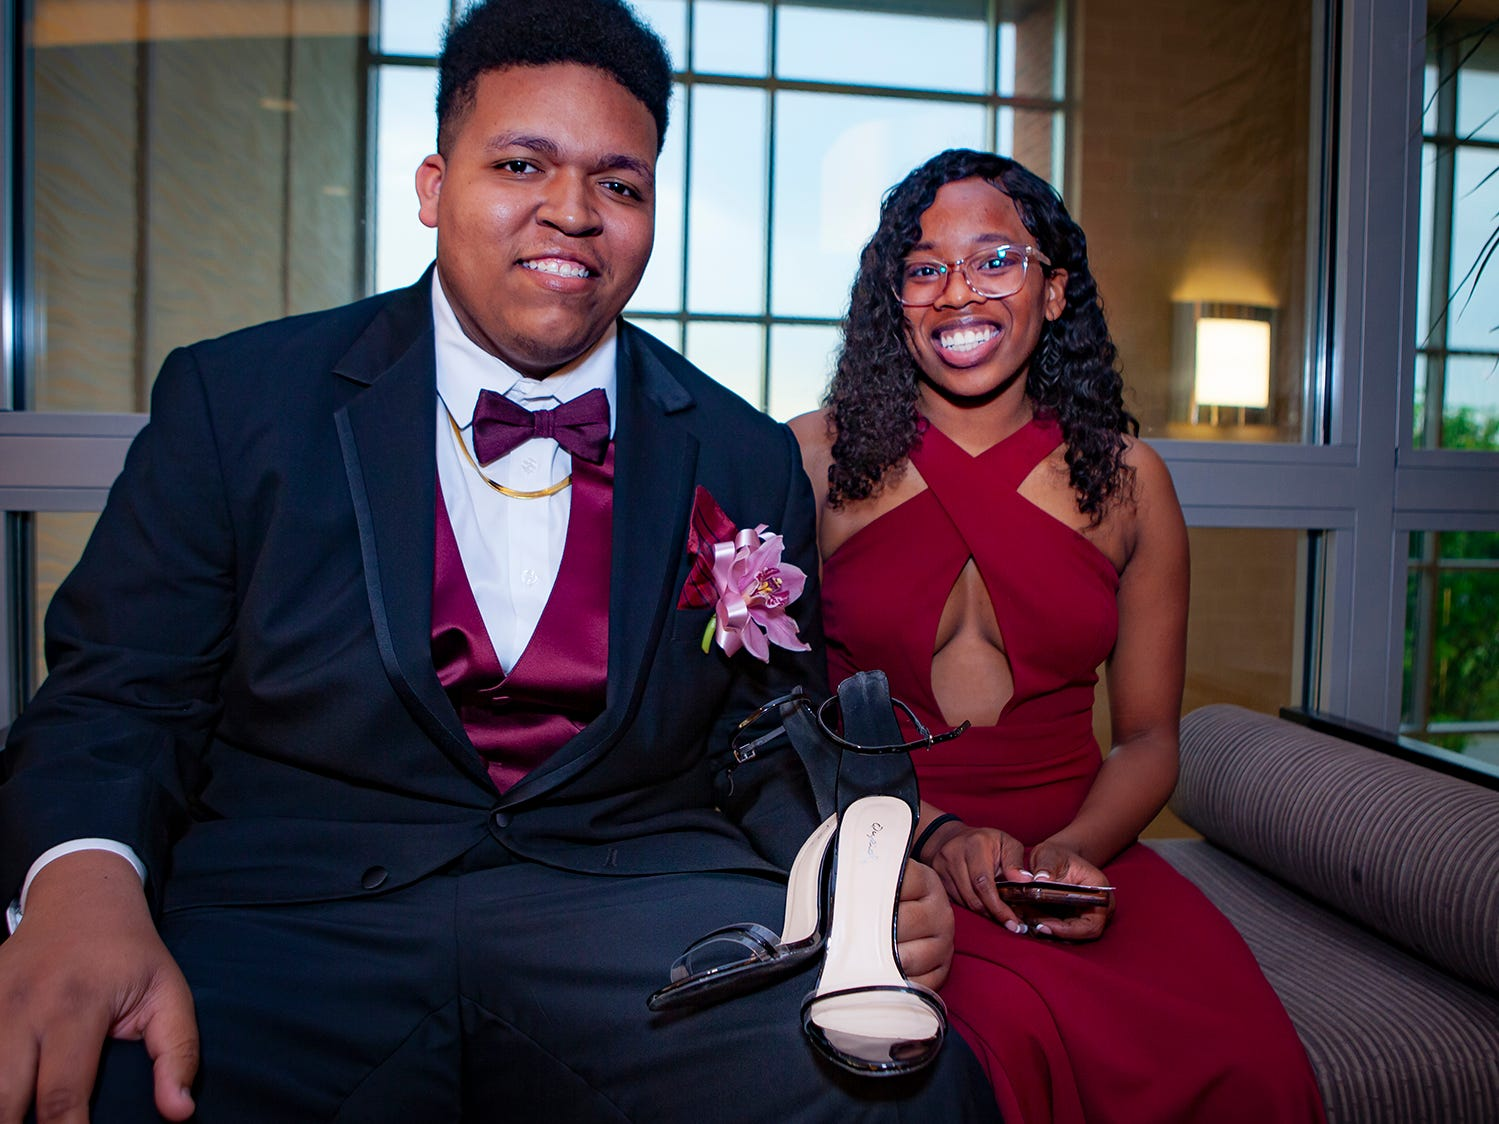 John Ragland holds date Dhasia Holliday's shoes at Riverdale's prom, held Saturday, April 27, 2019 at MTSU's Student Union Building.